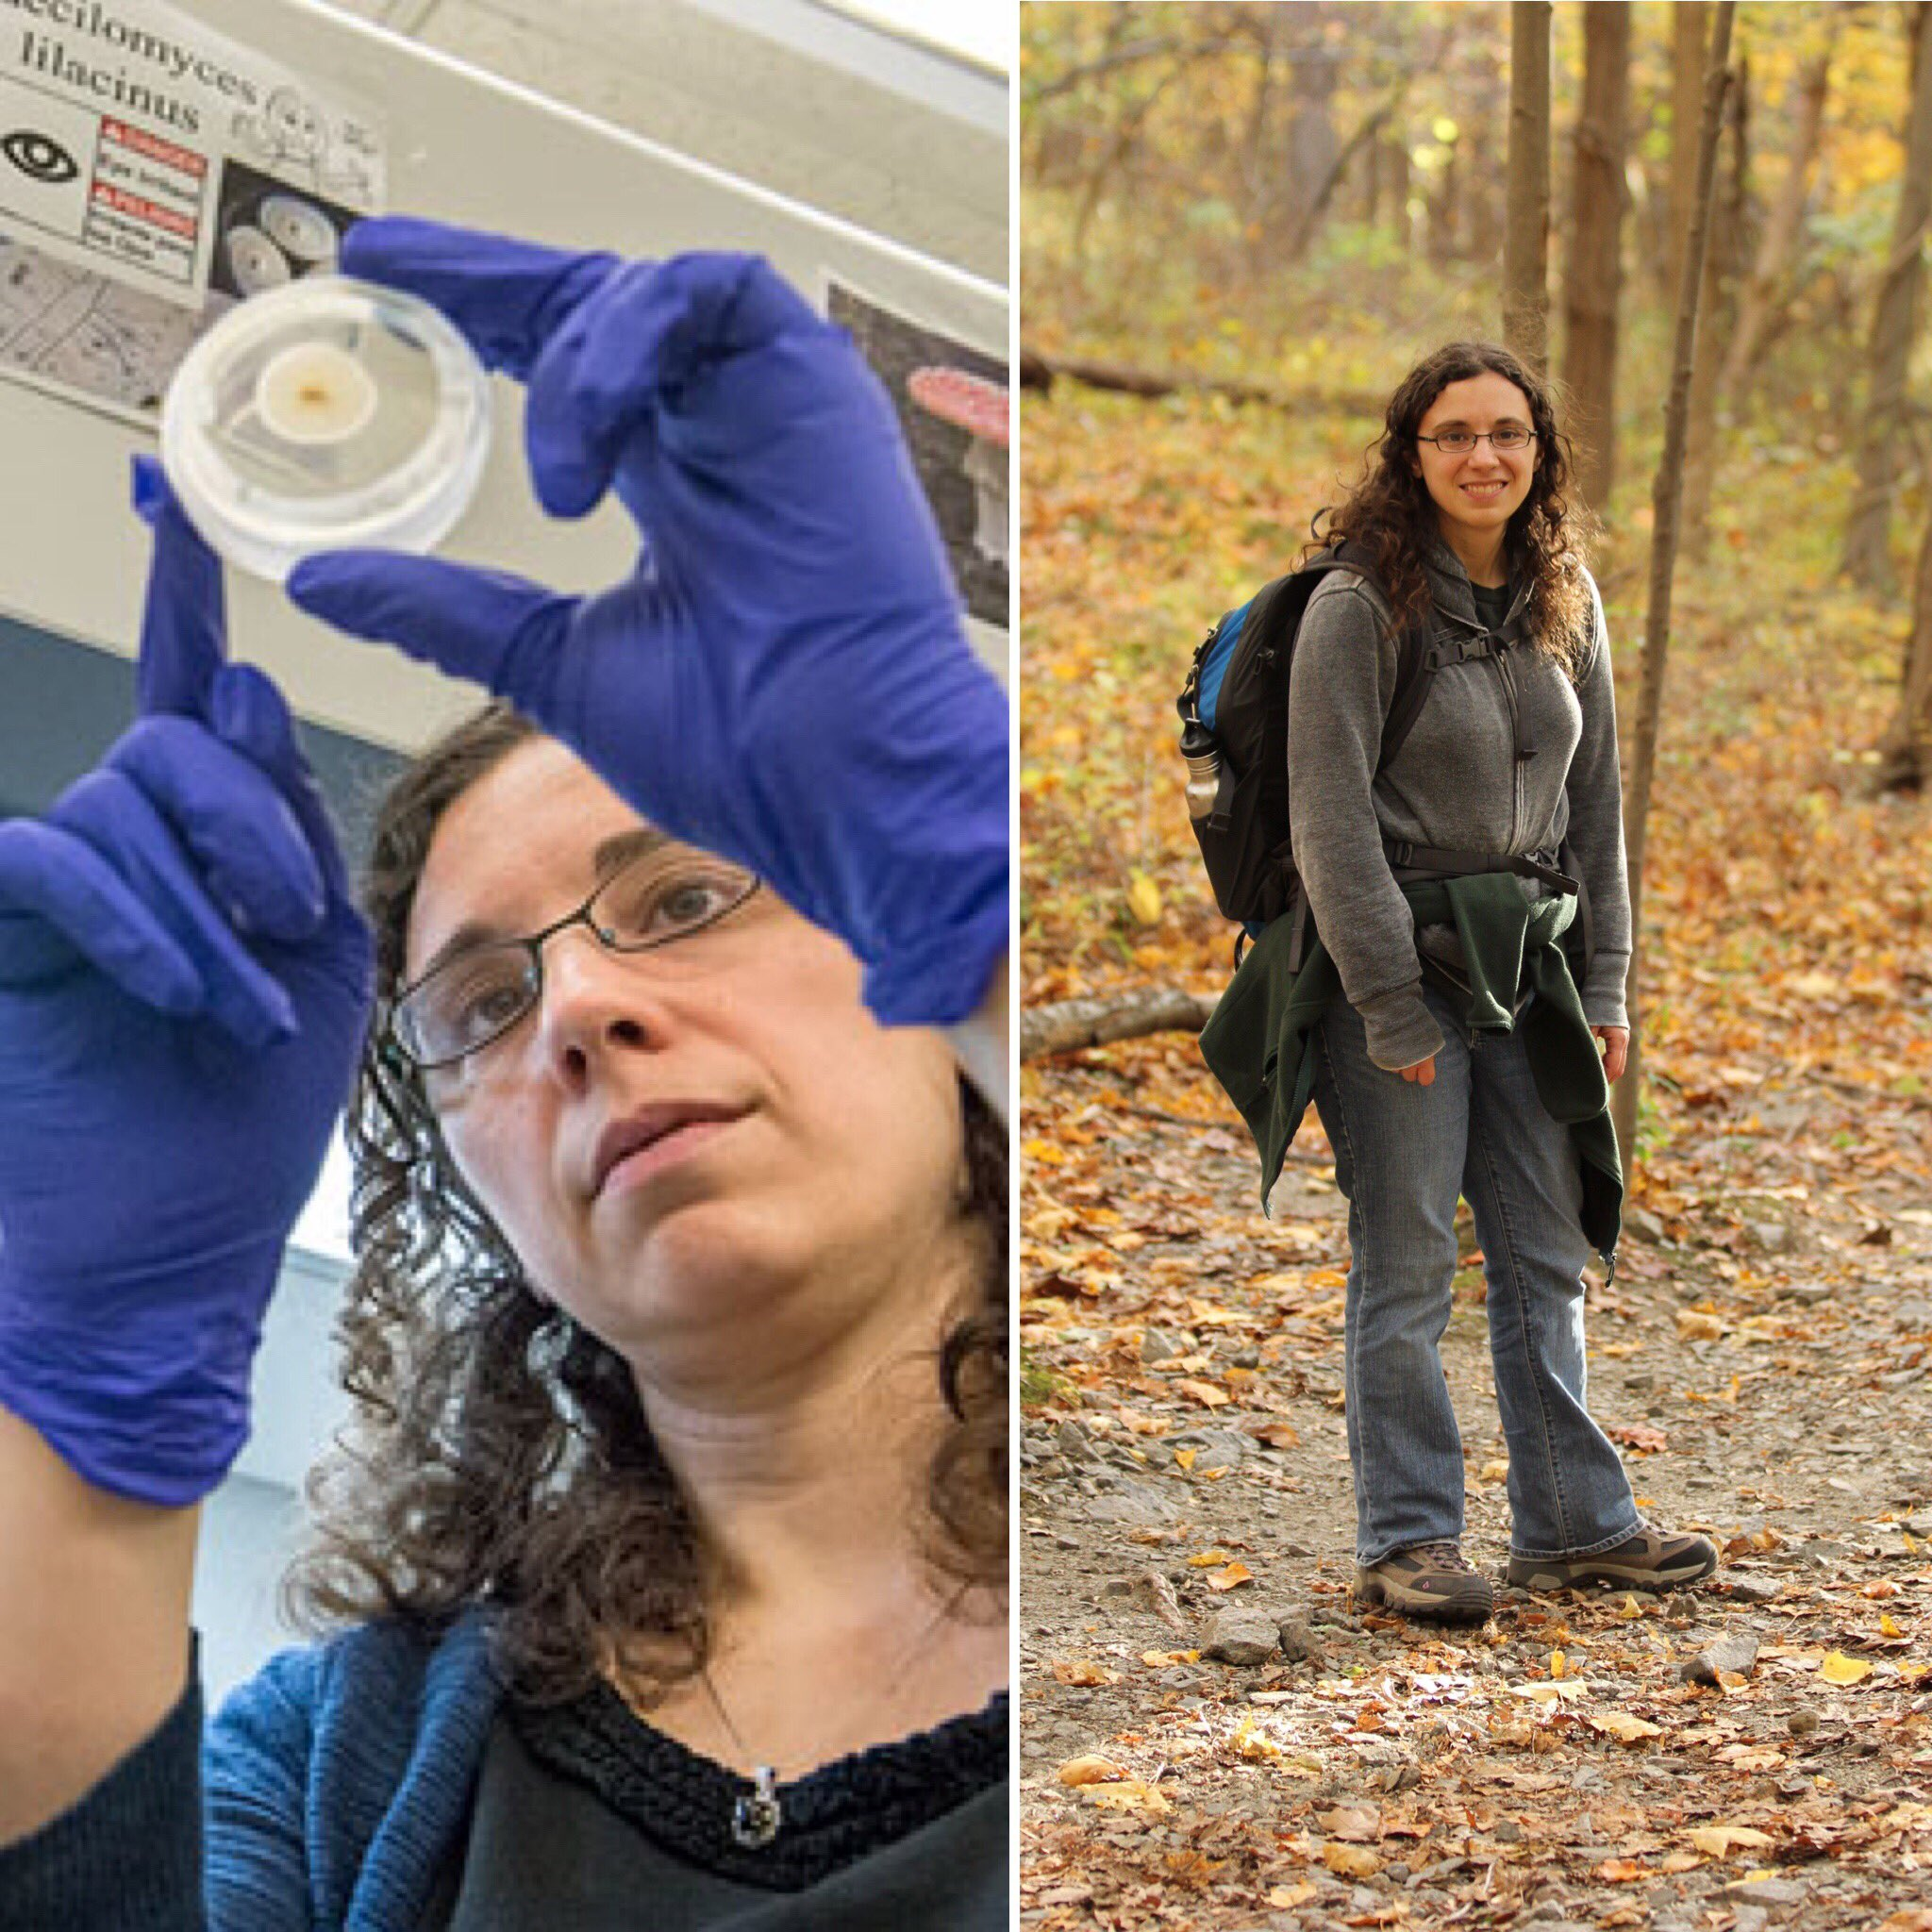 Hi, I'm Michelle. I'm an #actuallivingscientist studying how fungal pathogens influence plant diversity. #WomenScienceDay https://t.co/wqe0FGAzJJ